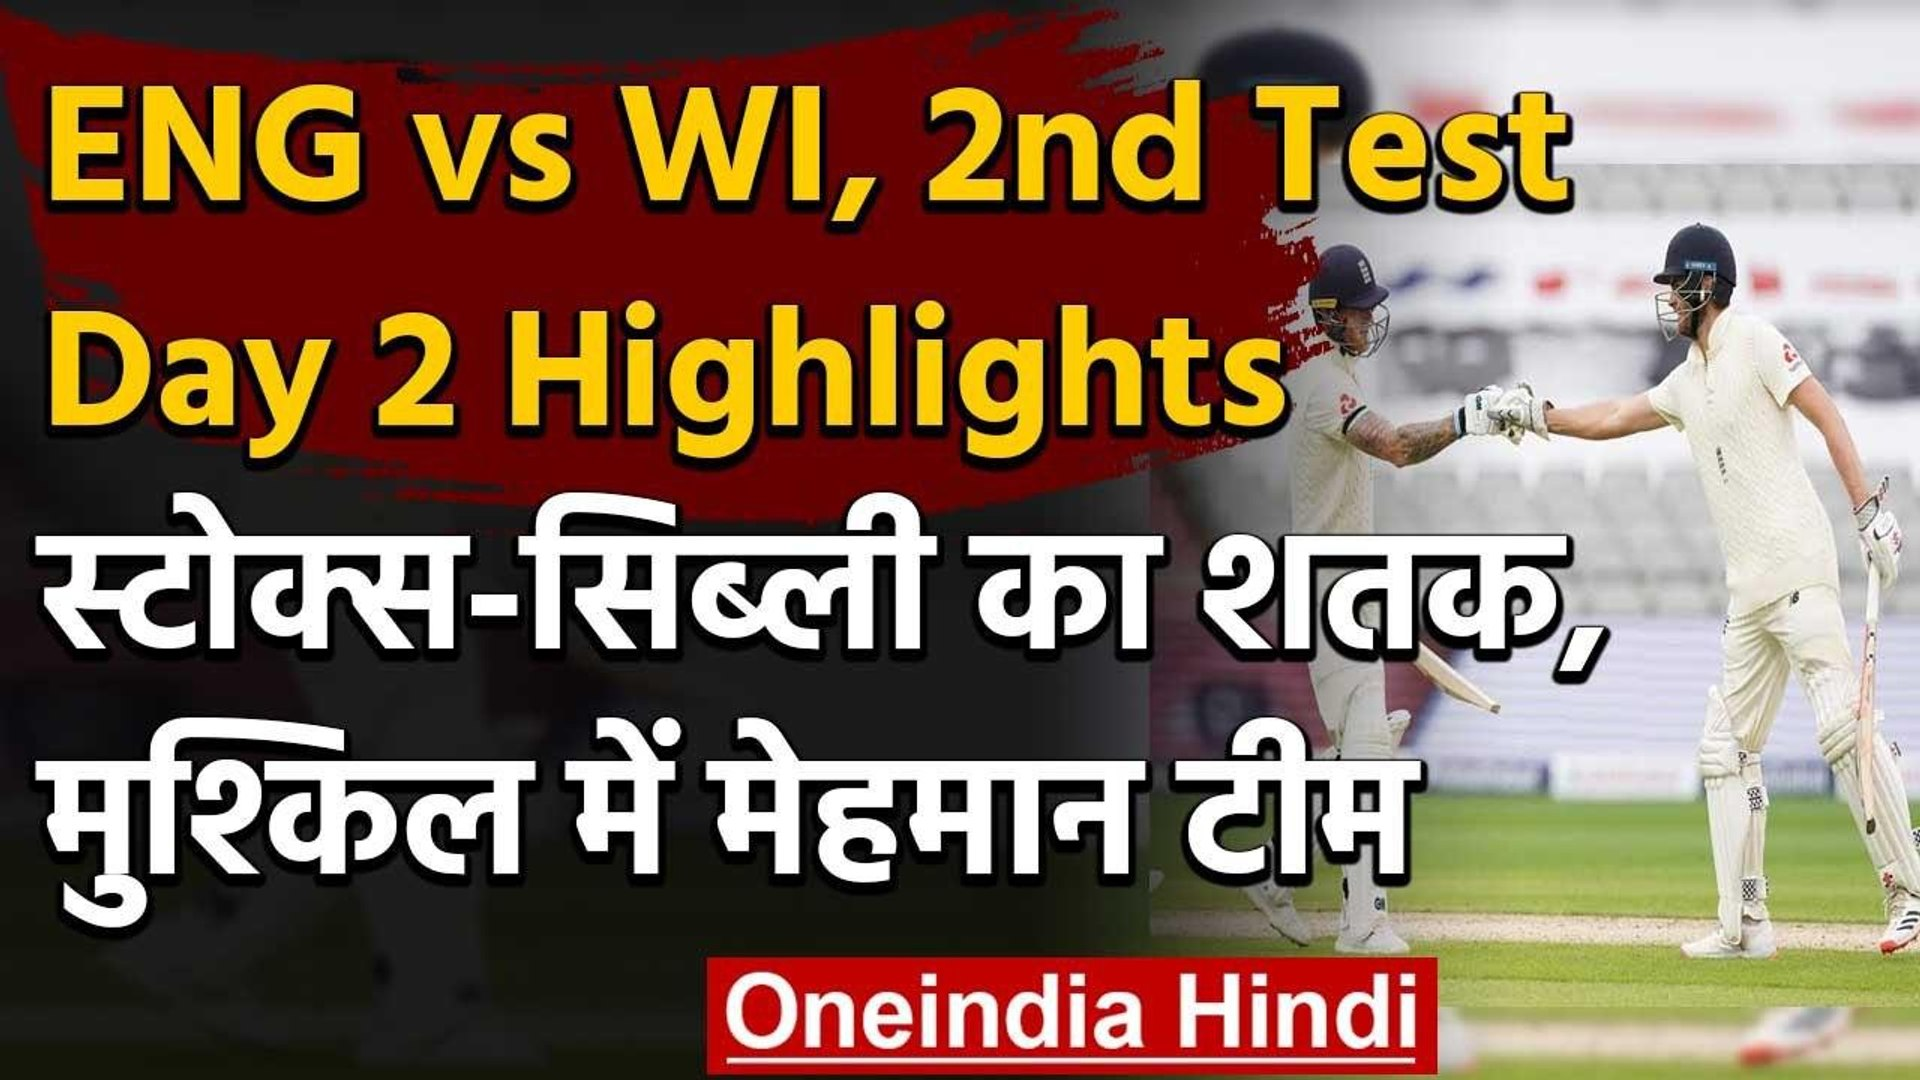 Eng vs WI 2nd Test Day 2 Highlights: Ben Stokes, Sibley Centuries put England on top |वनइंडिया हिंदी